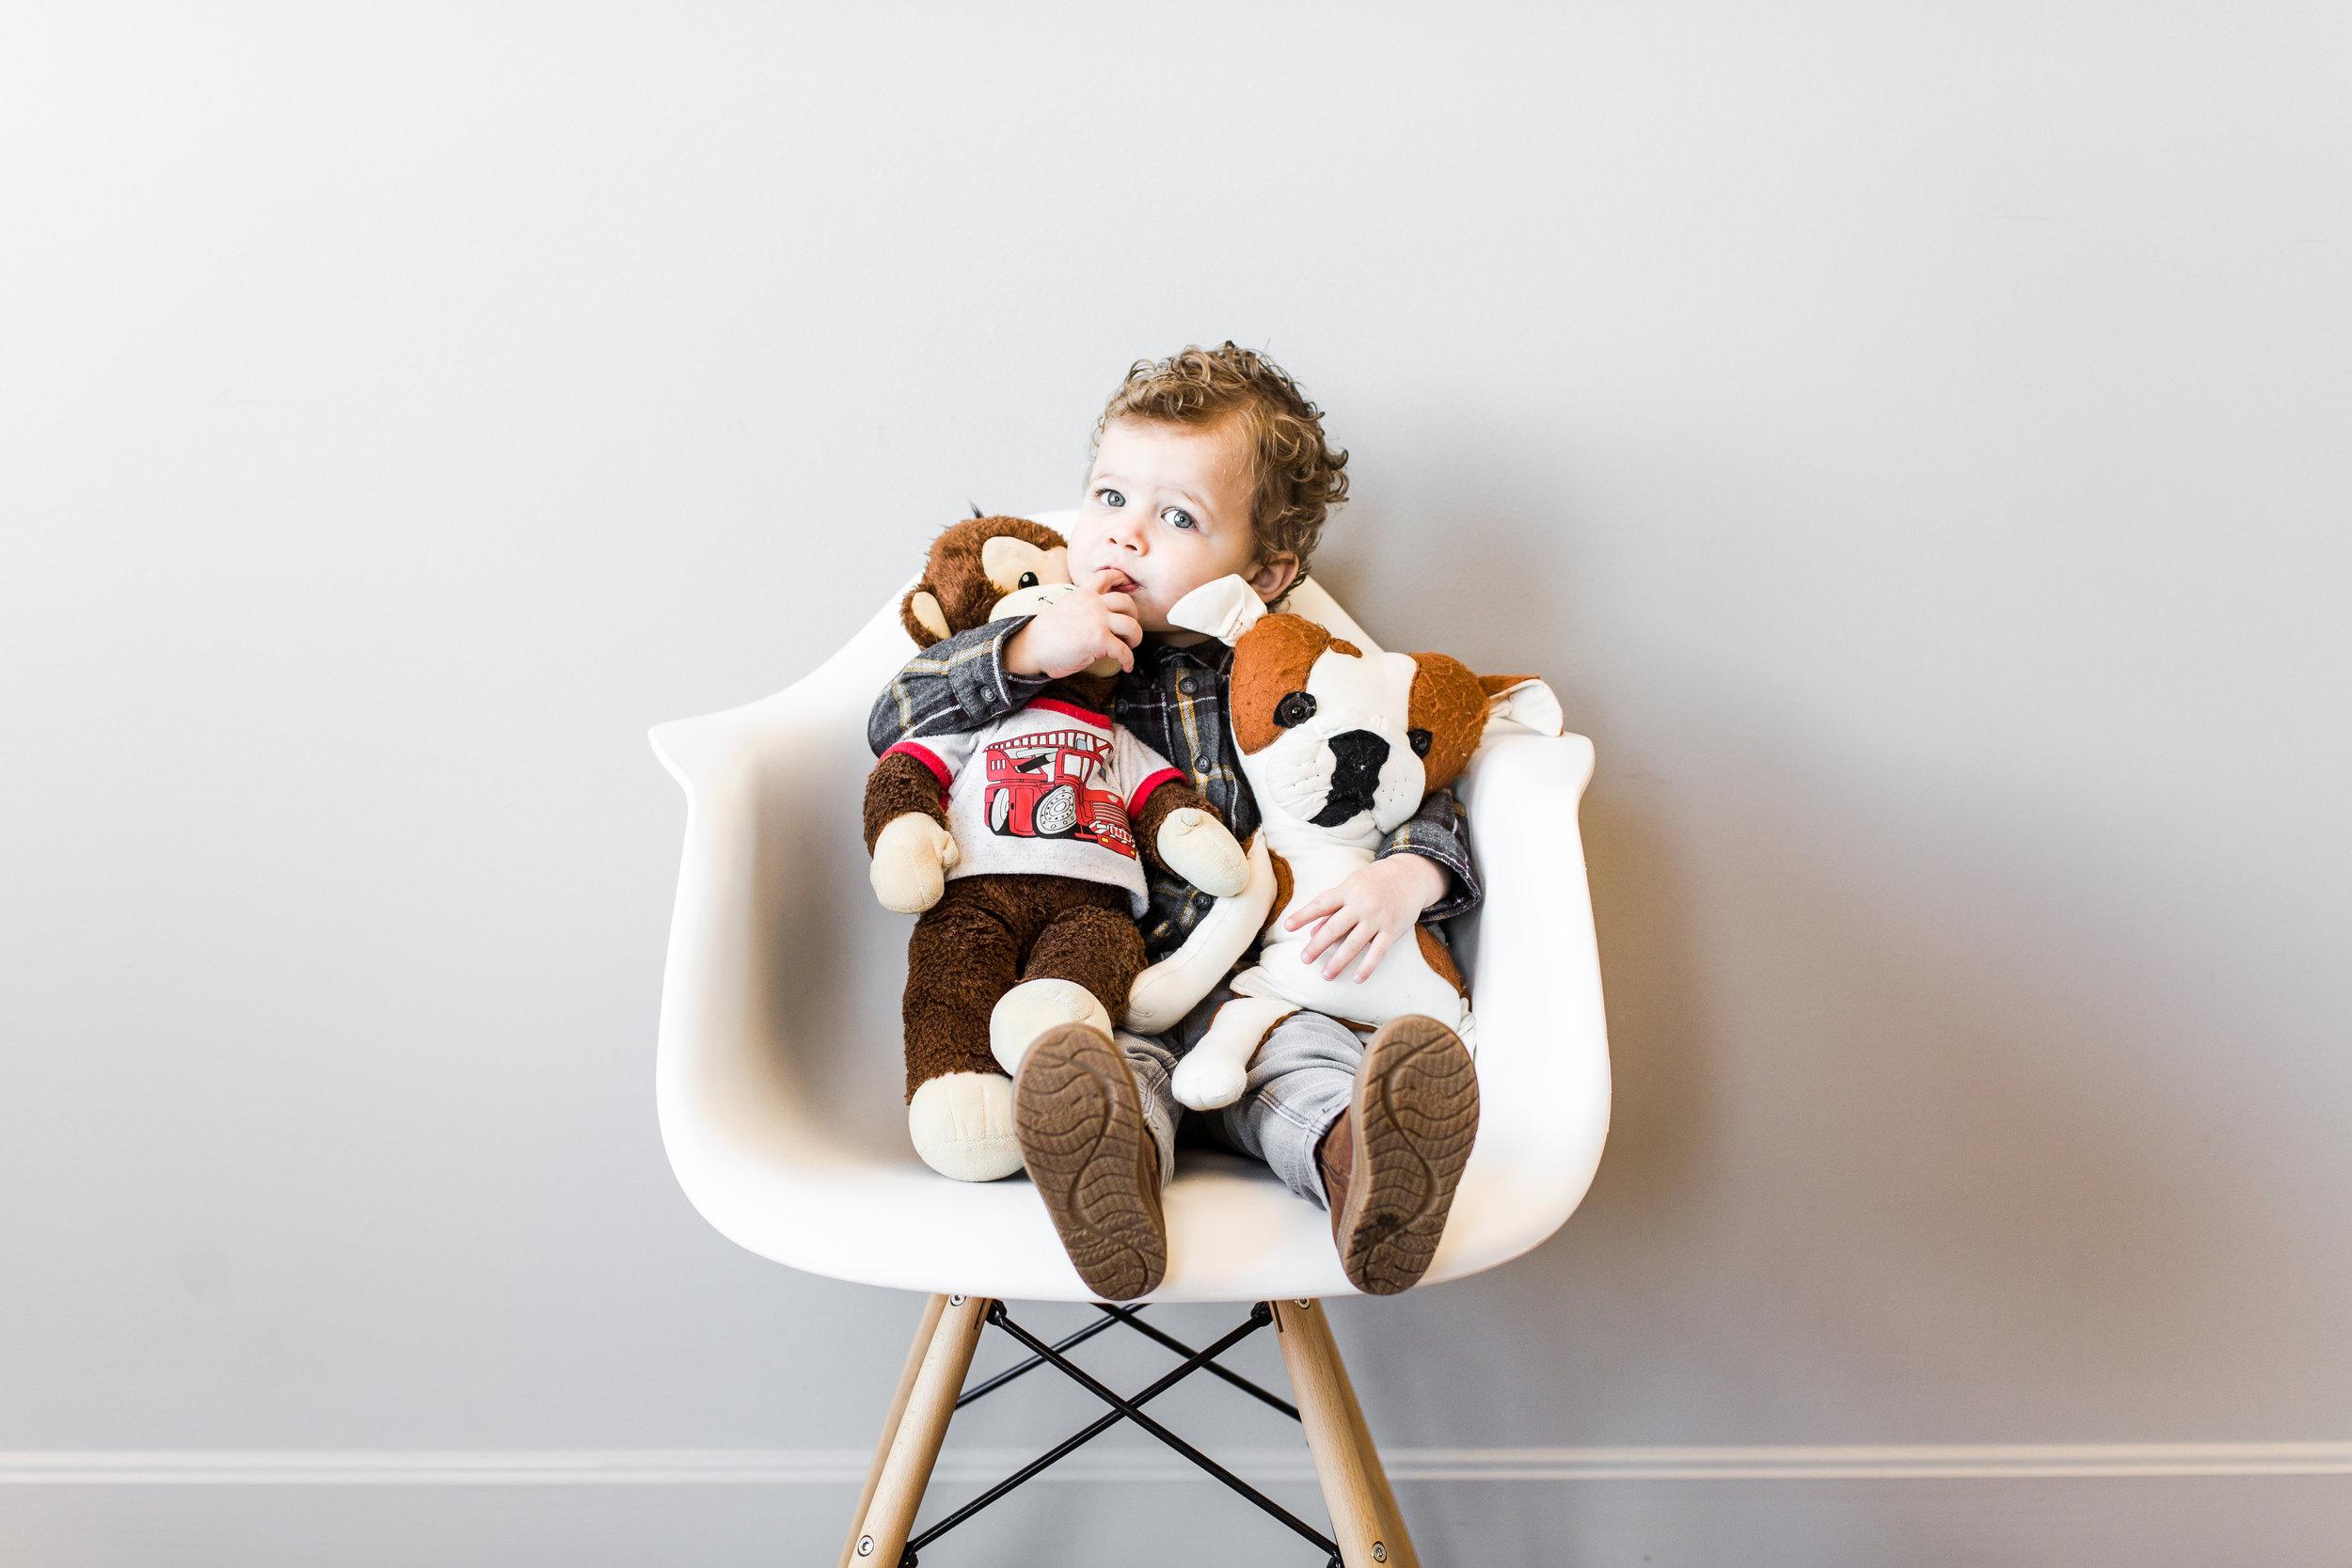 White Chair Mini Sessions - February 2, 2019HAP Studio - 334 E. Commercial St. Springfield, MO 65803 Suite 2029AM - 12PMContact Hannah for details.